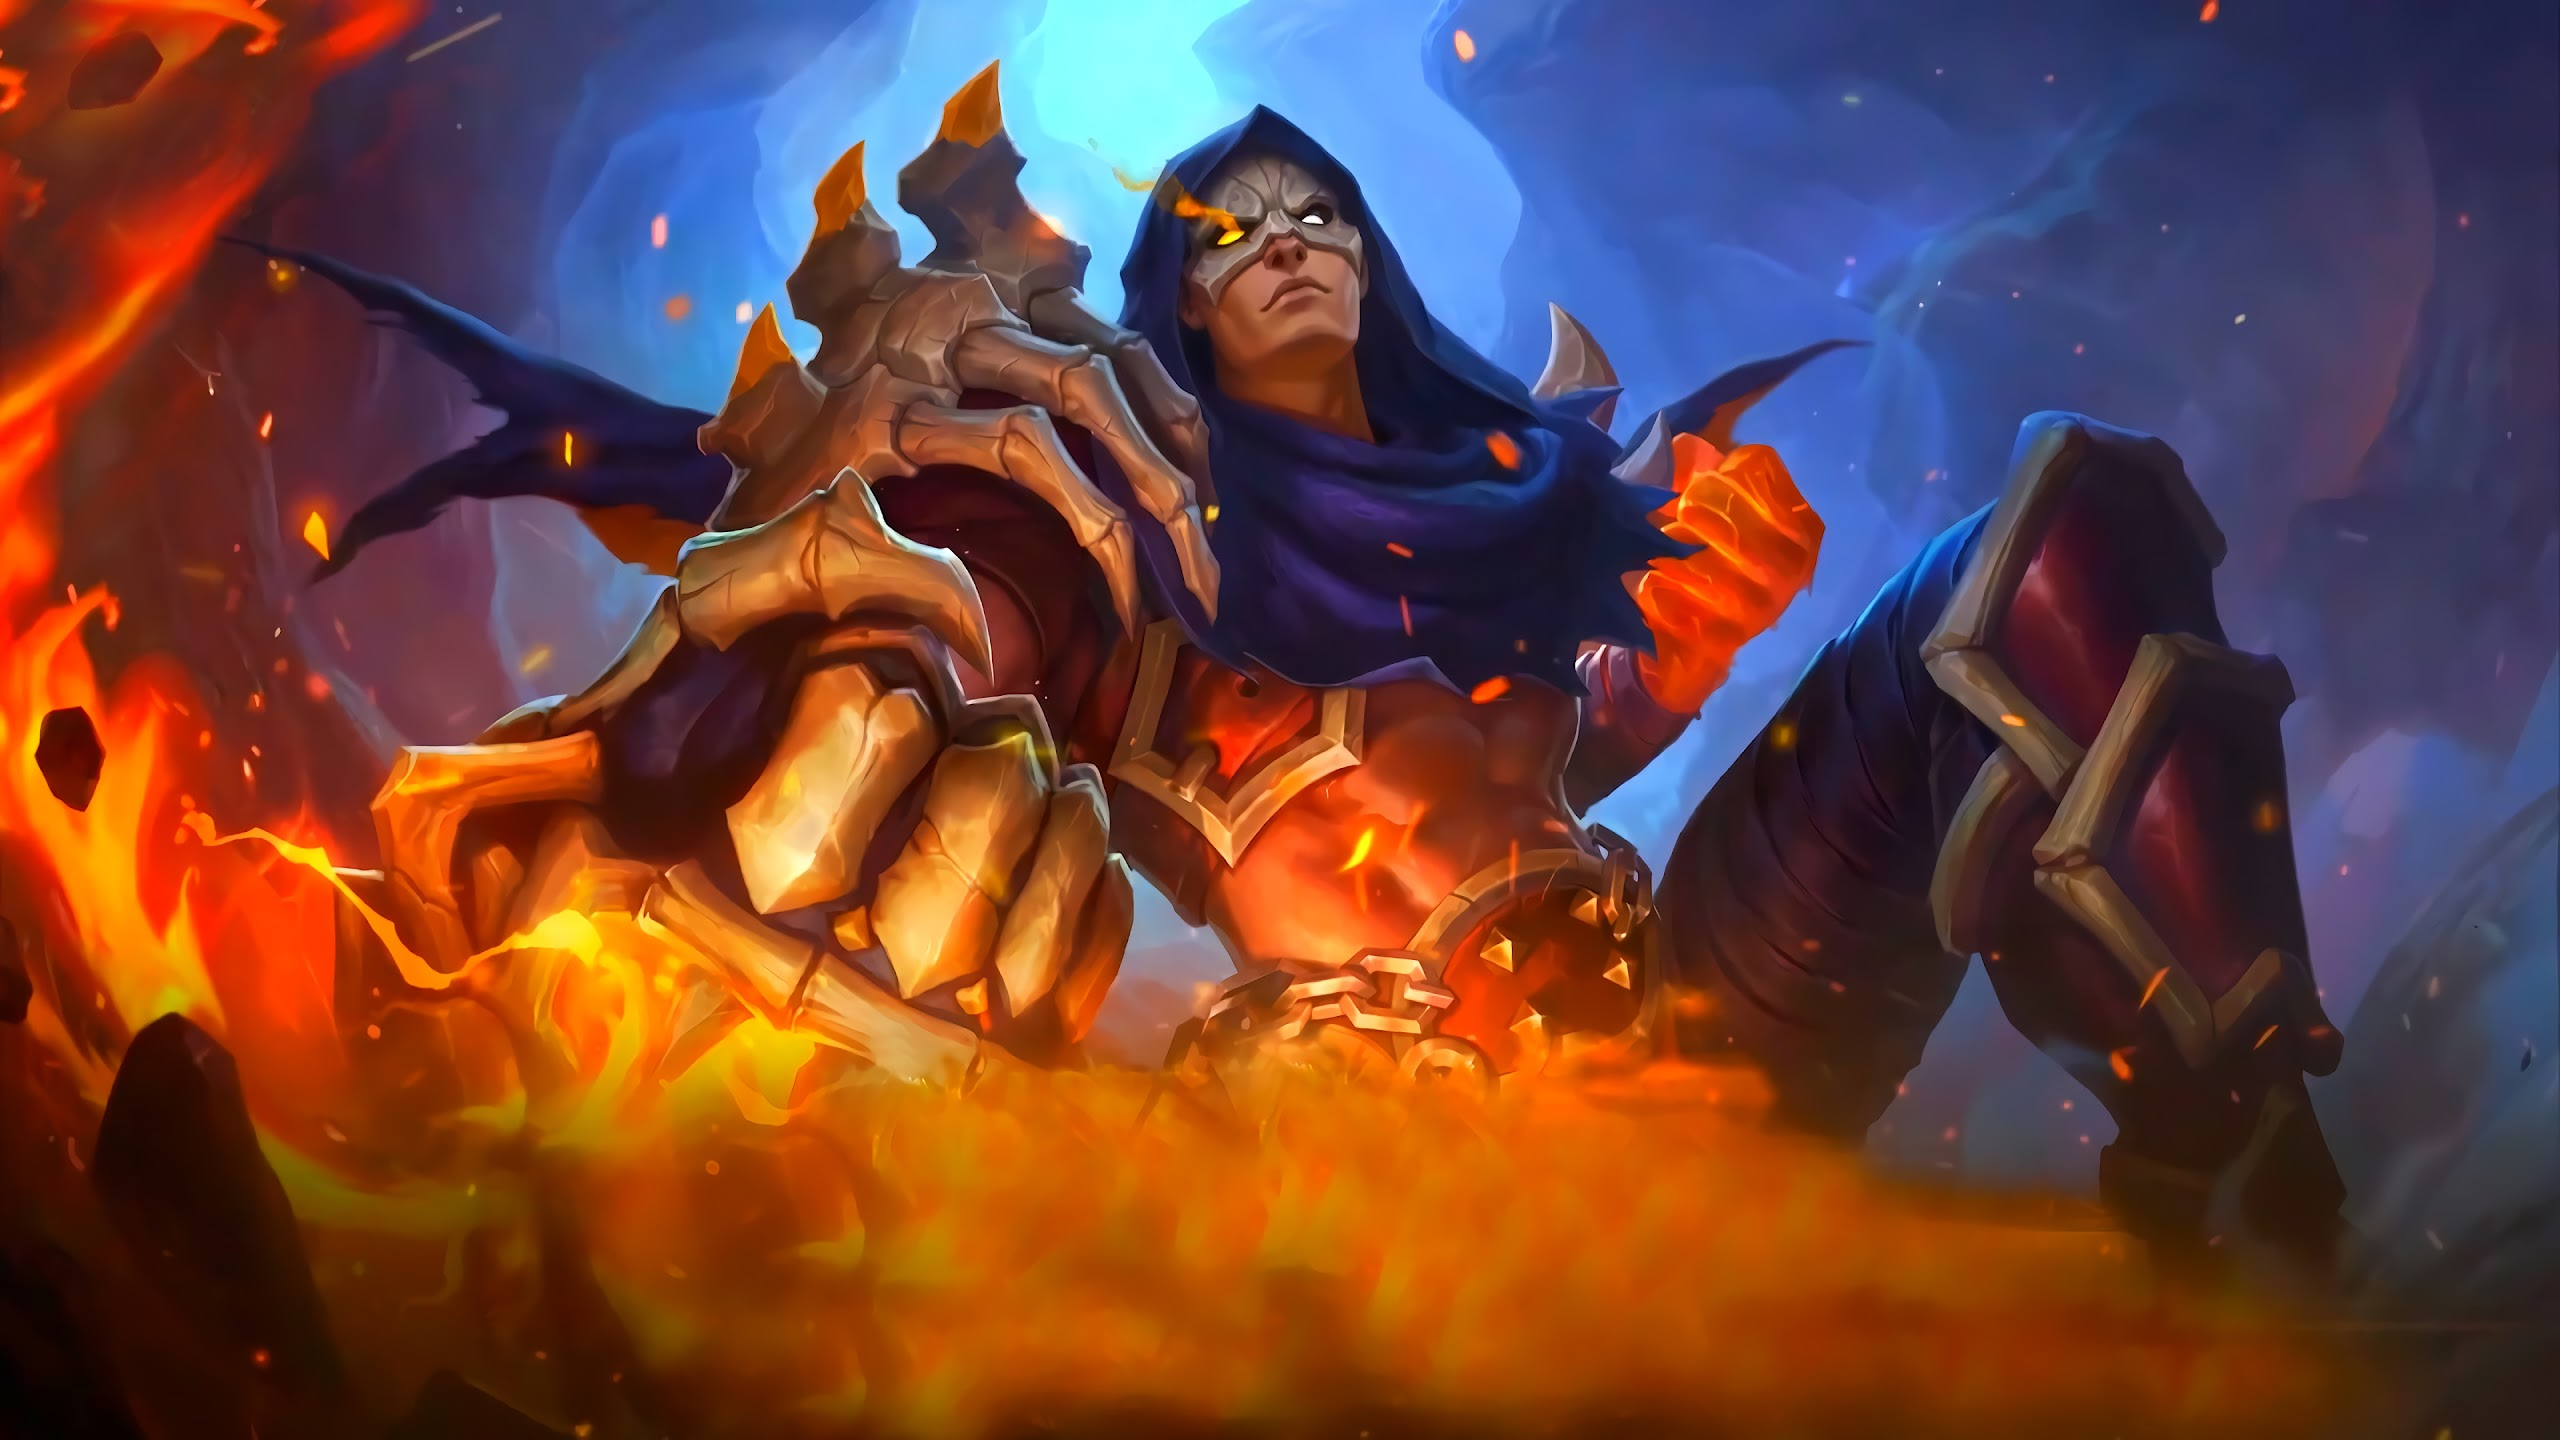 Wallpaper Aldous Death Skin Mobile Legends HD for PC - hobigame.id